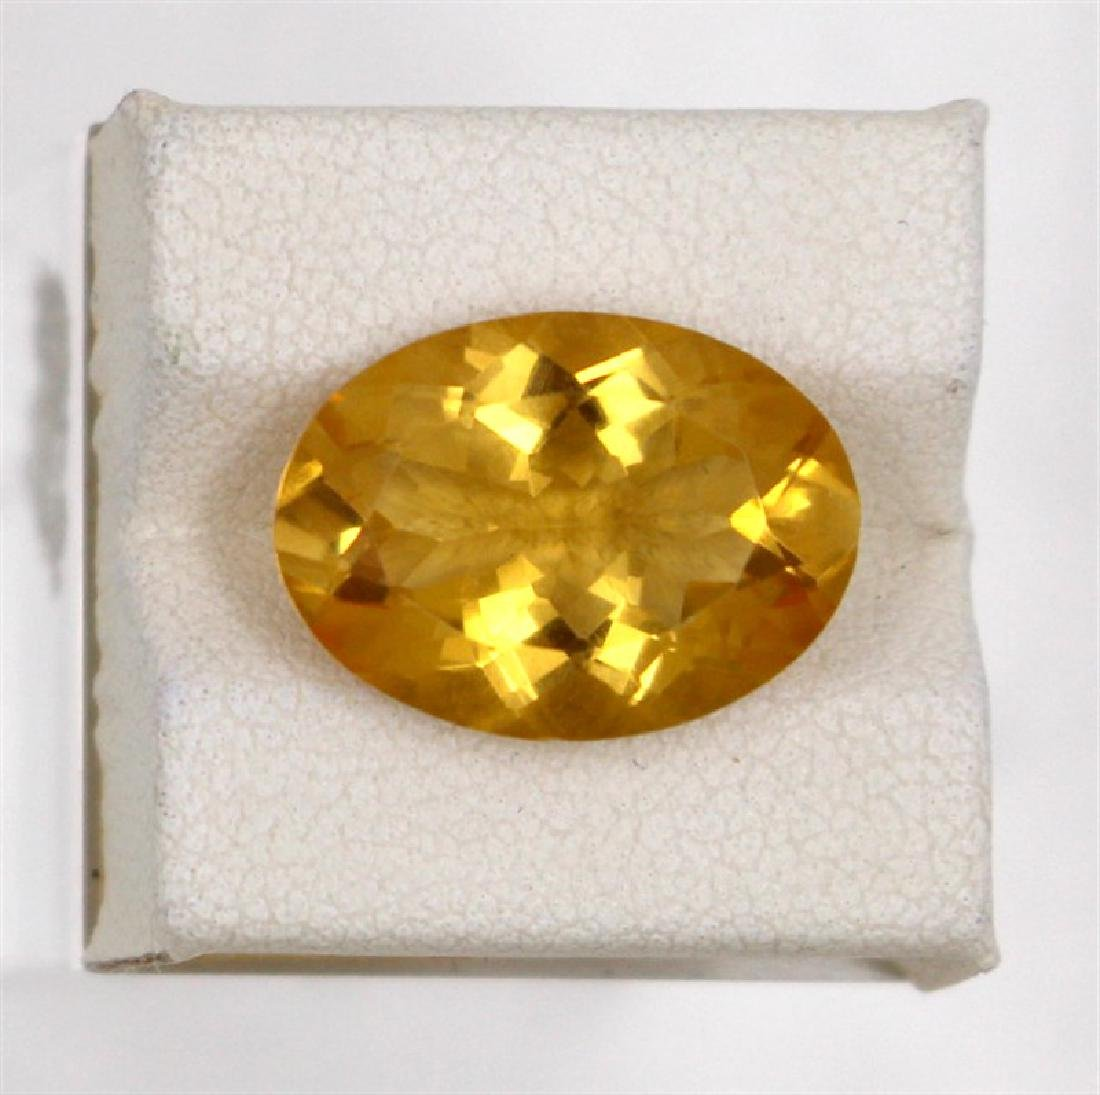 7.47ct Natural citrine oval cut